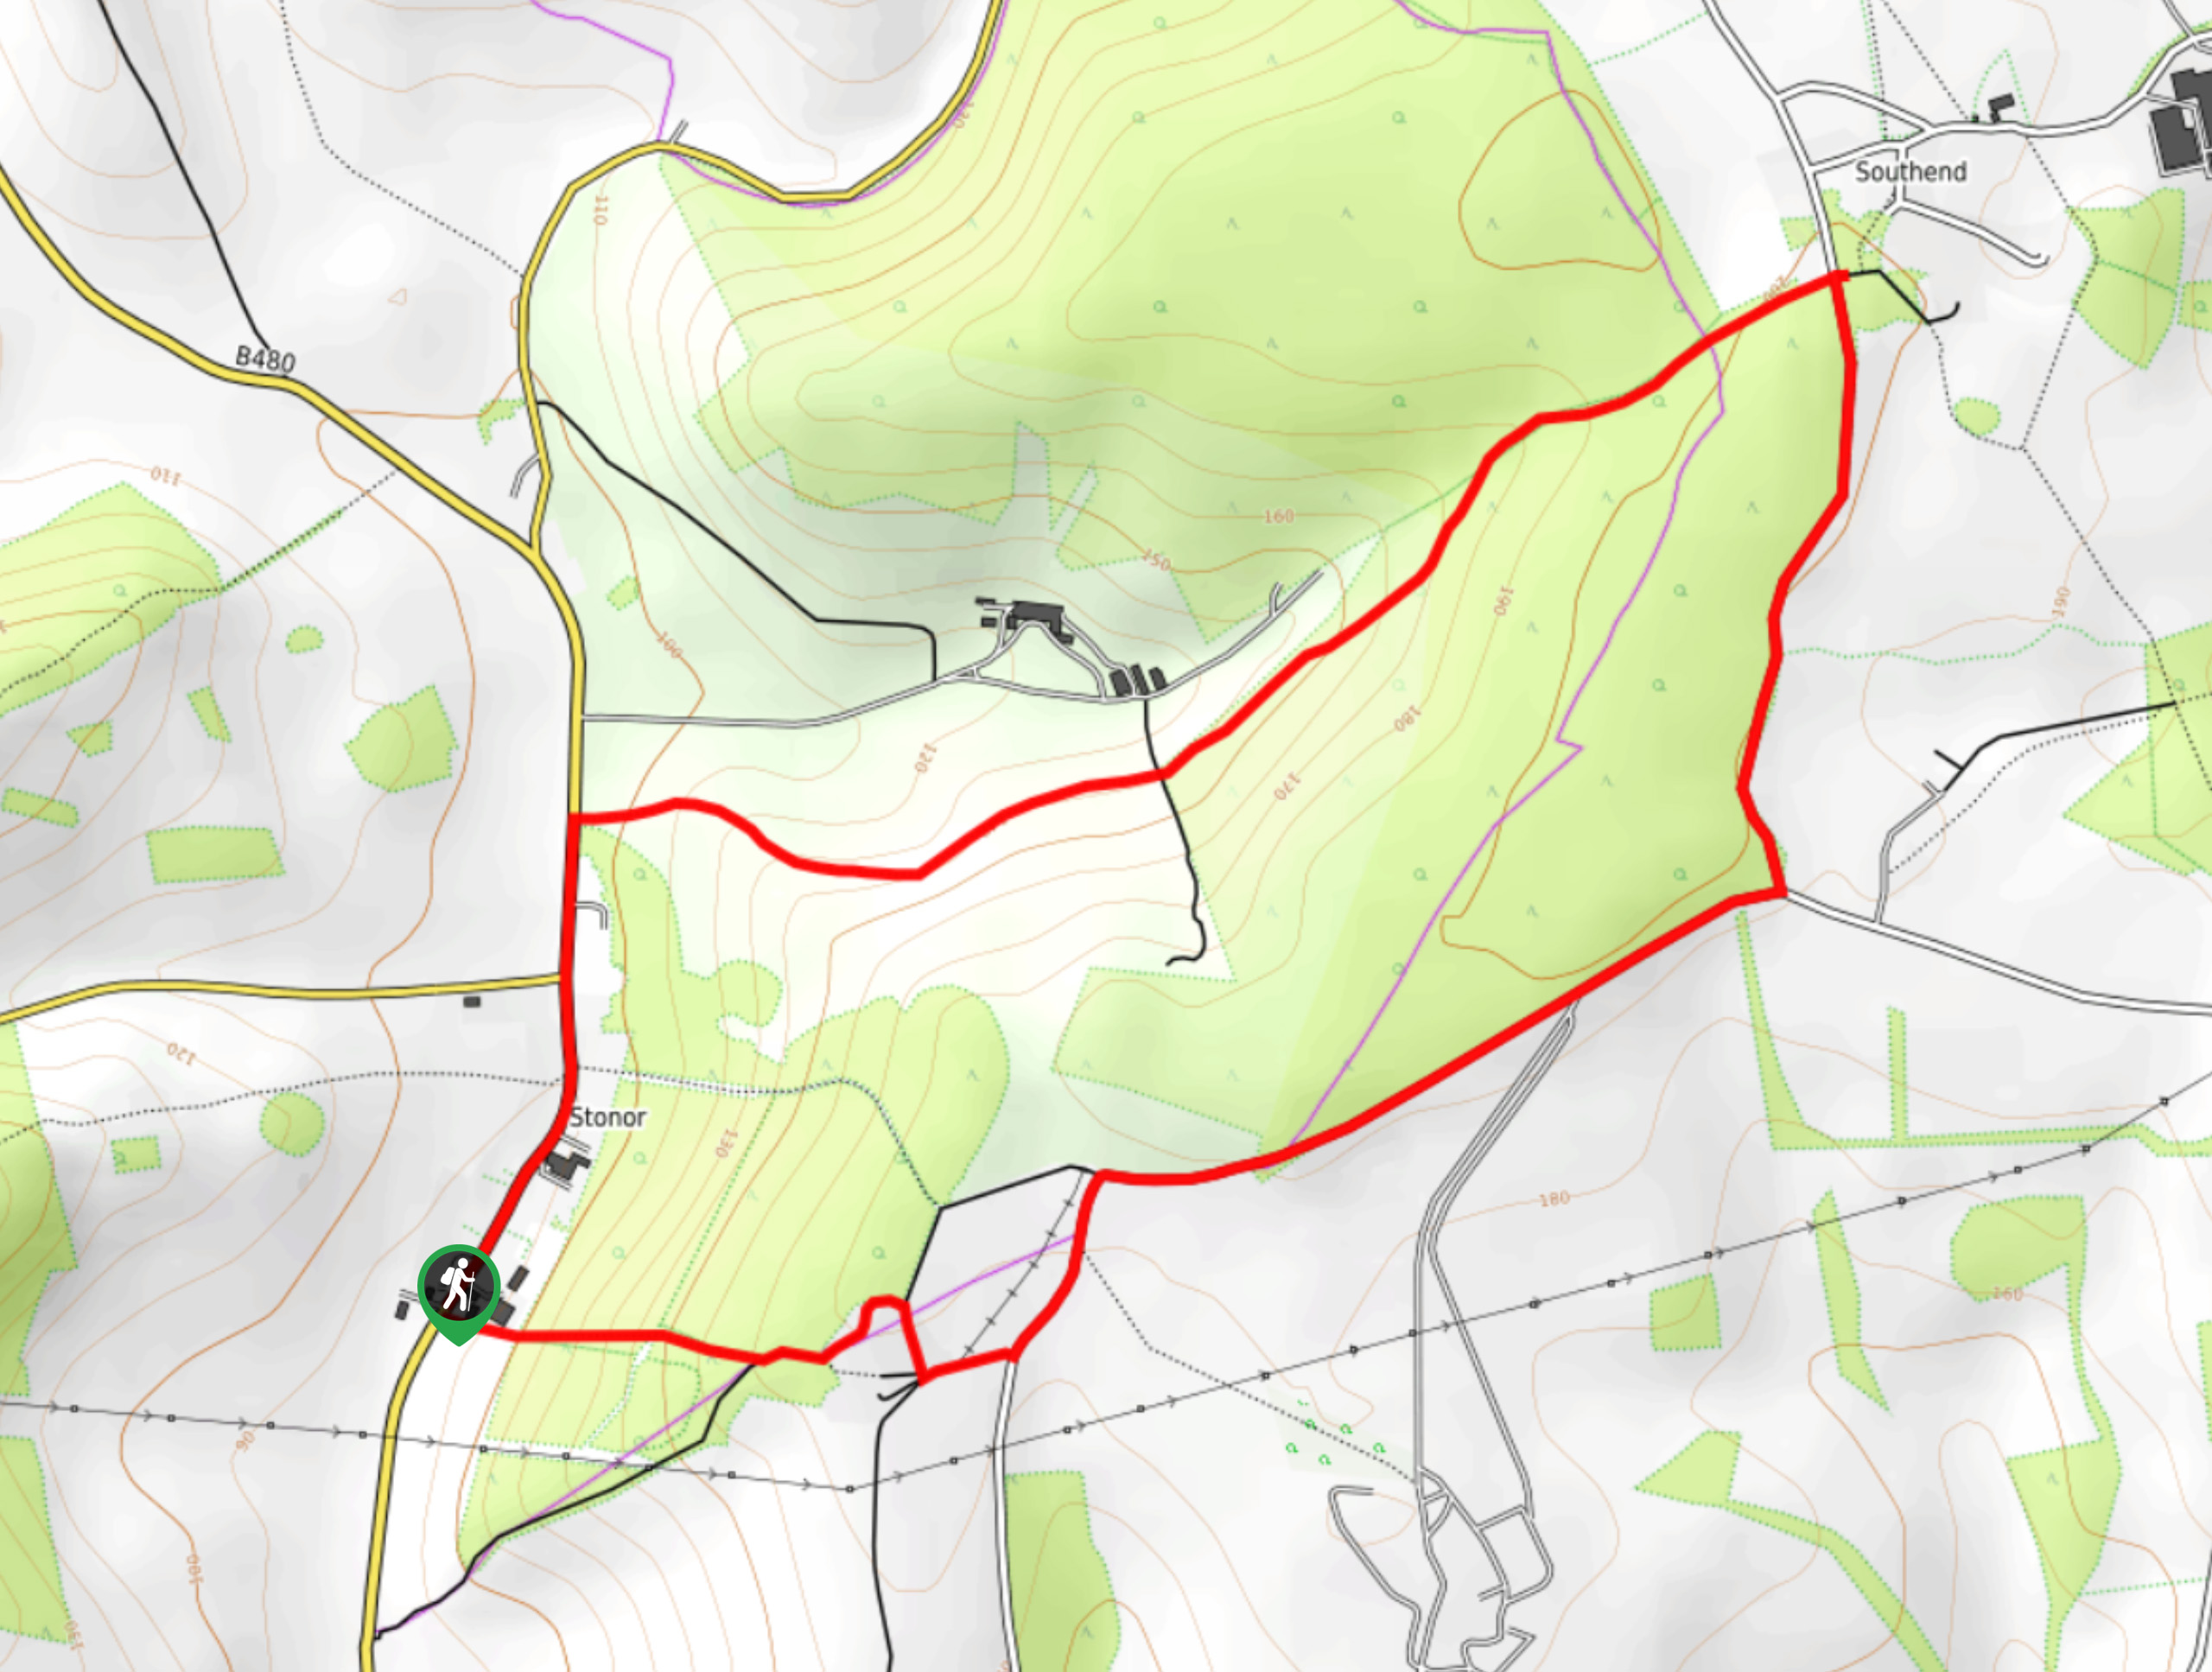 Almshill Wood and Stonor Park Walk Map